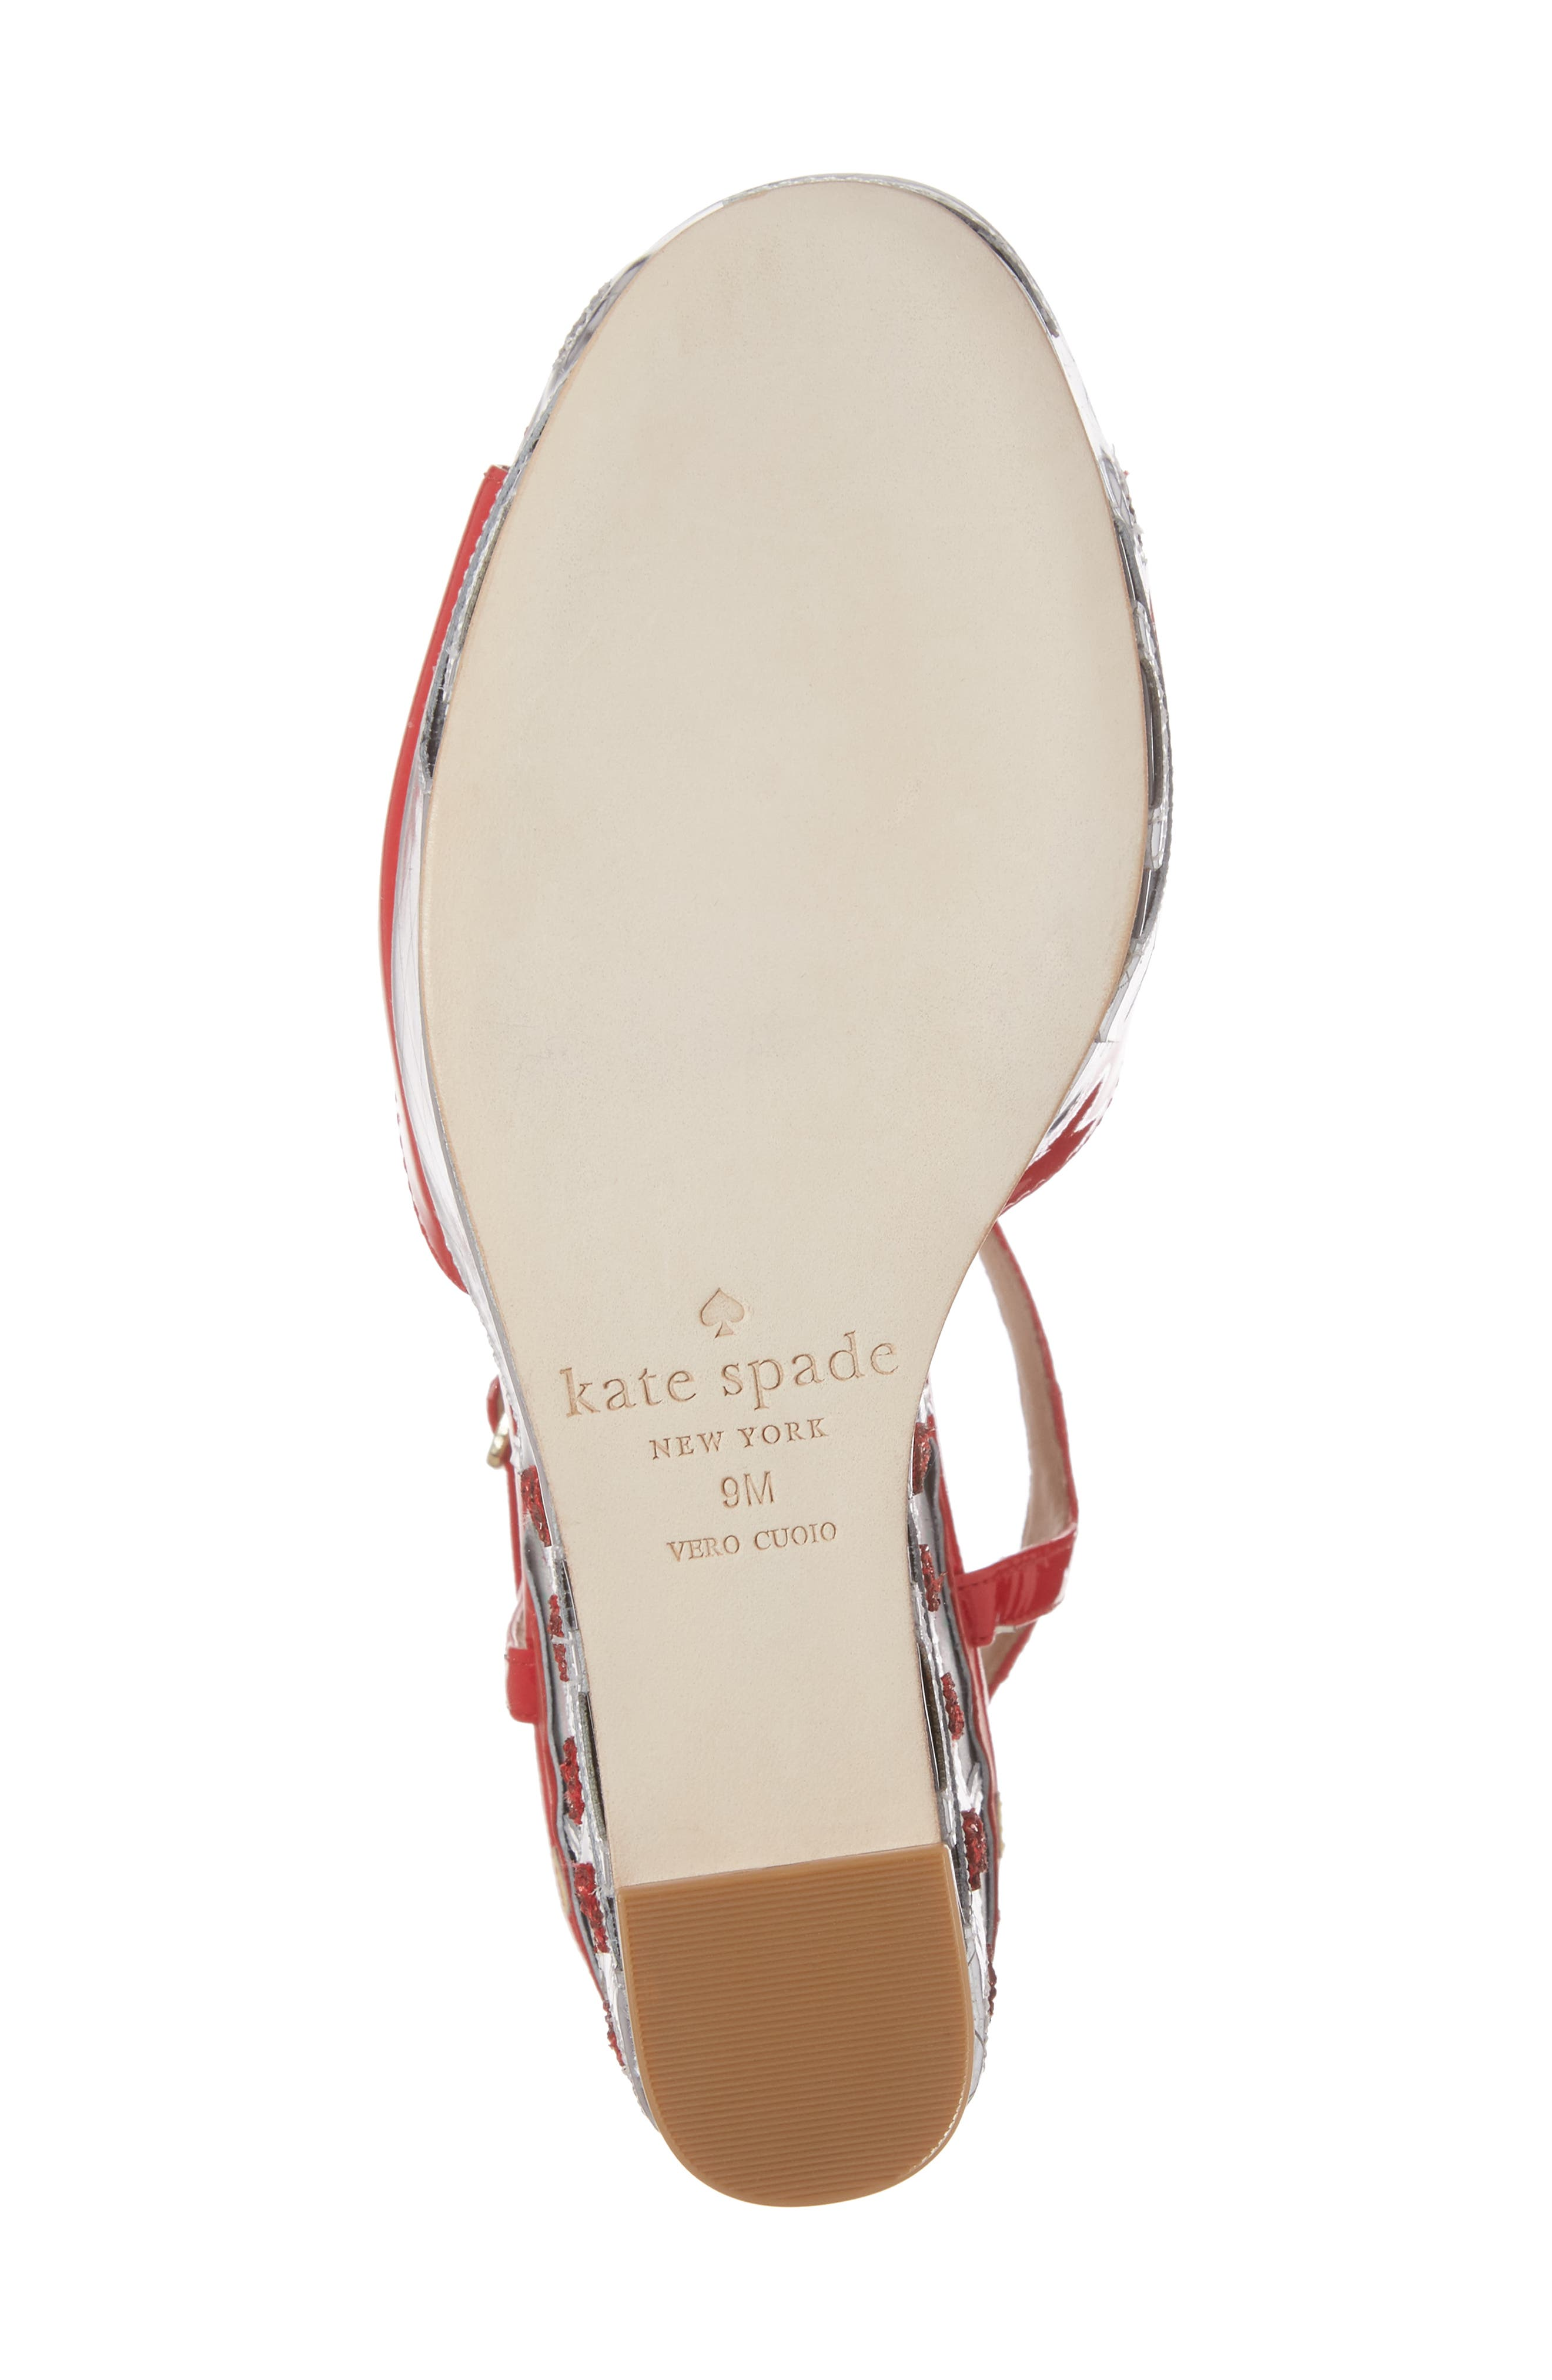 dora wedge sandal,                             Alternate thumbnail 6, color,                             Maraschino Red Patent